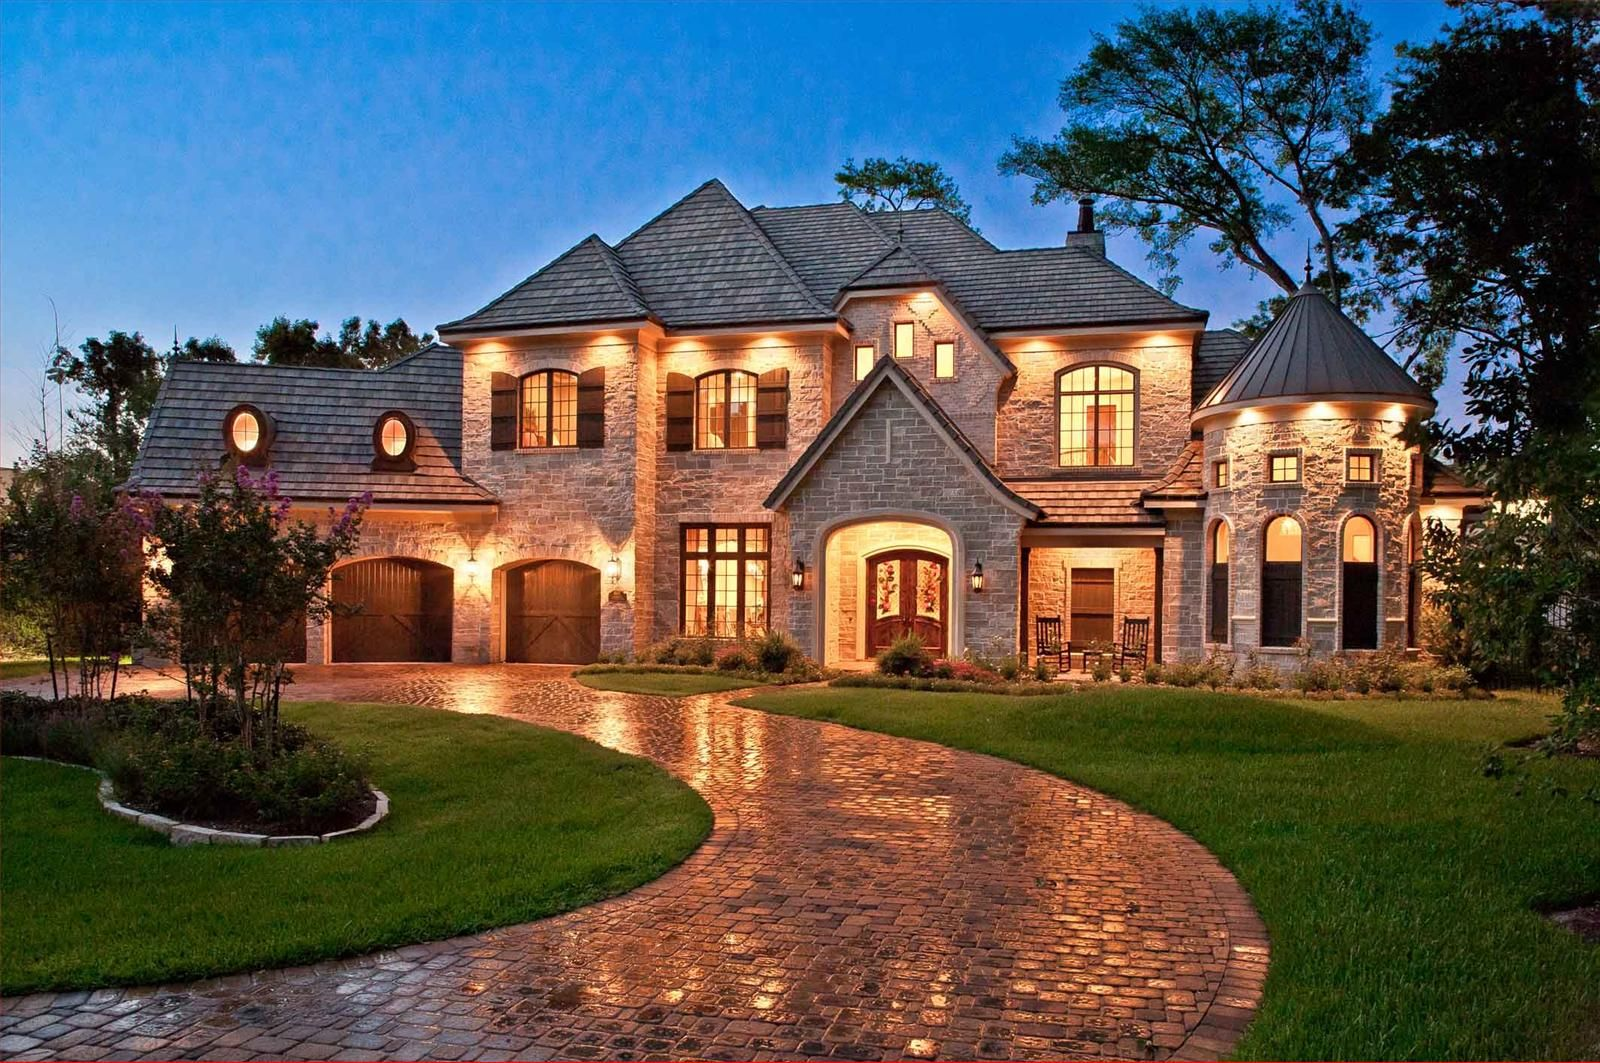 Gorgeous french country house design exterior with large home shape in luxury touch using stone - Chic french country inspired home real comfort and elegance ...